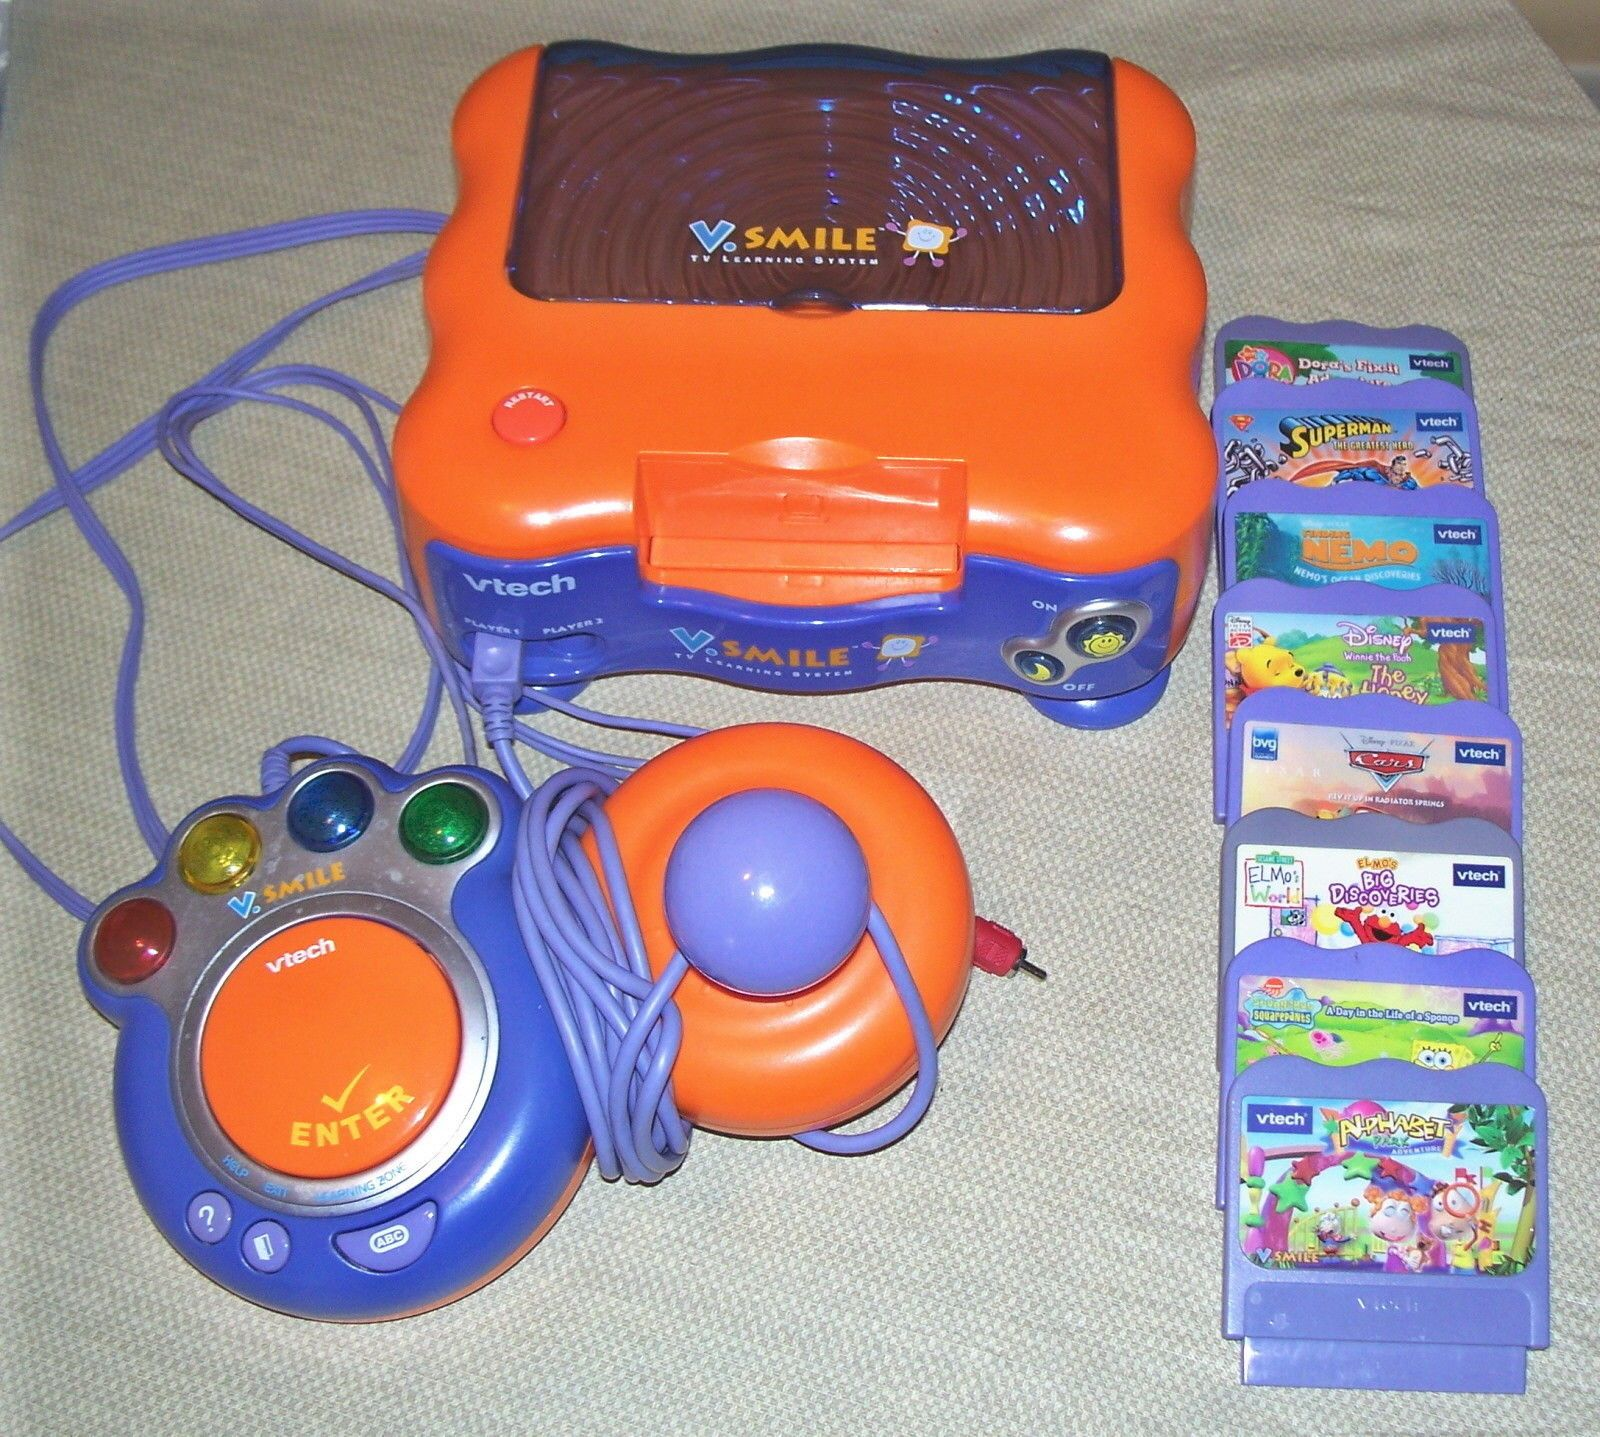 Smile Educational Toys : Vtech v smile learning console system controller